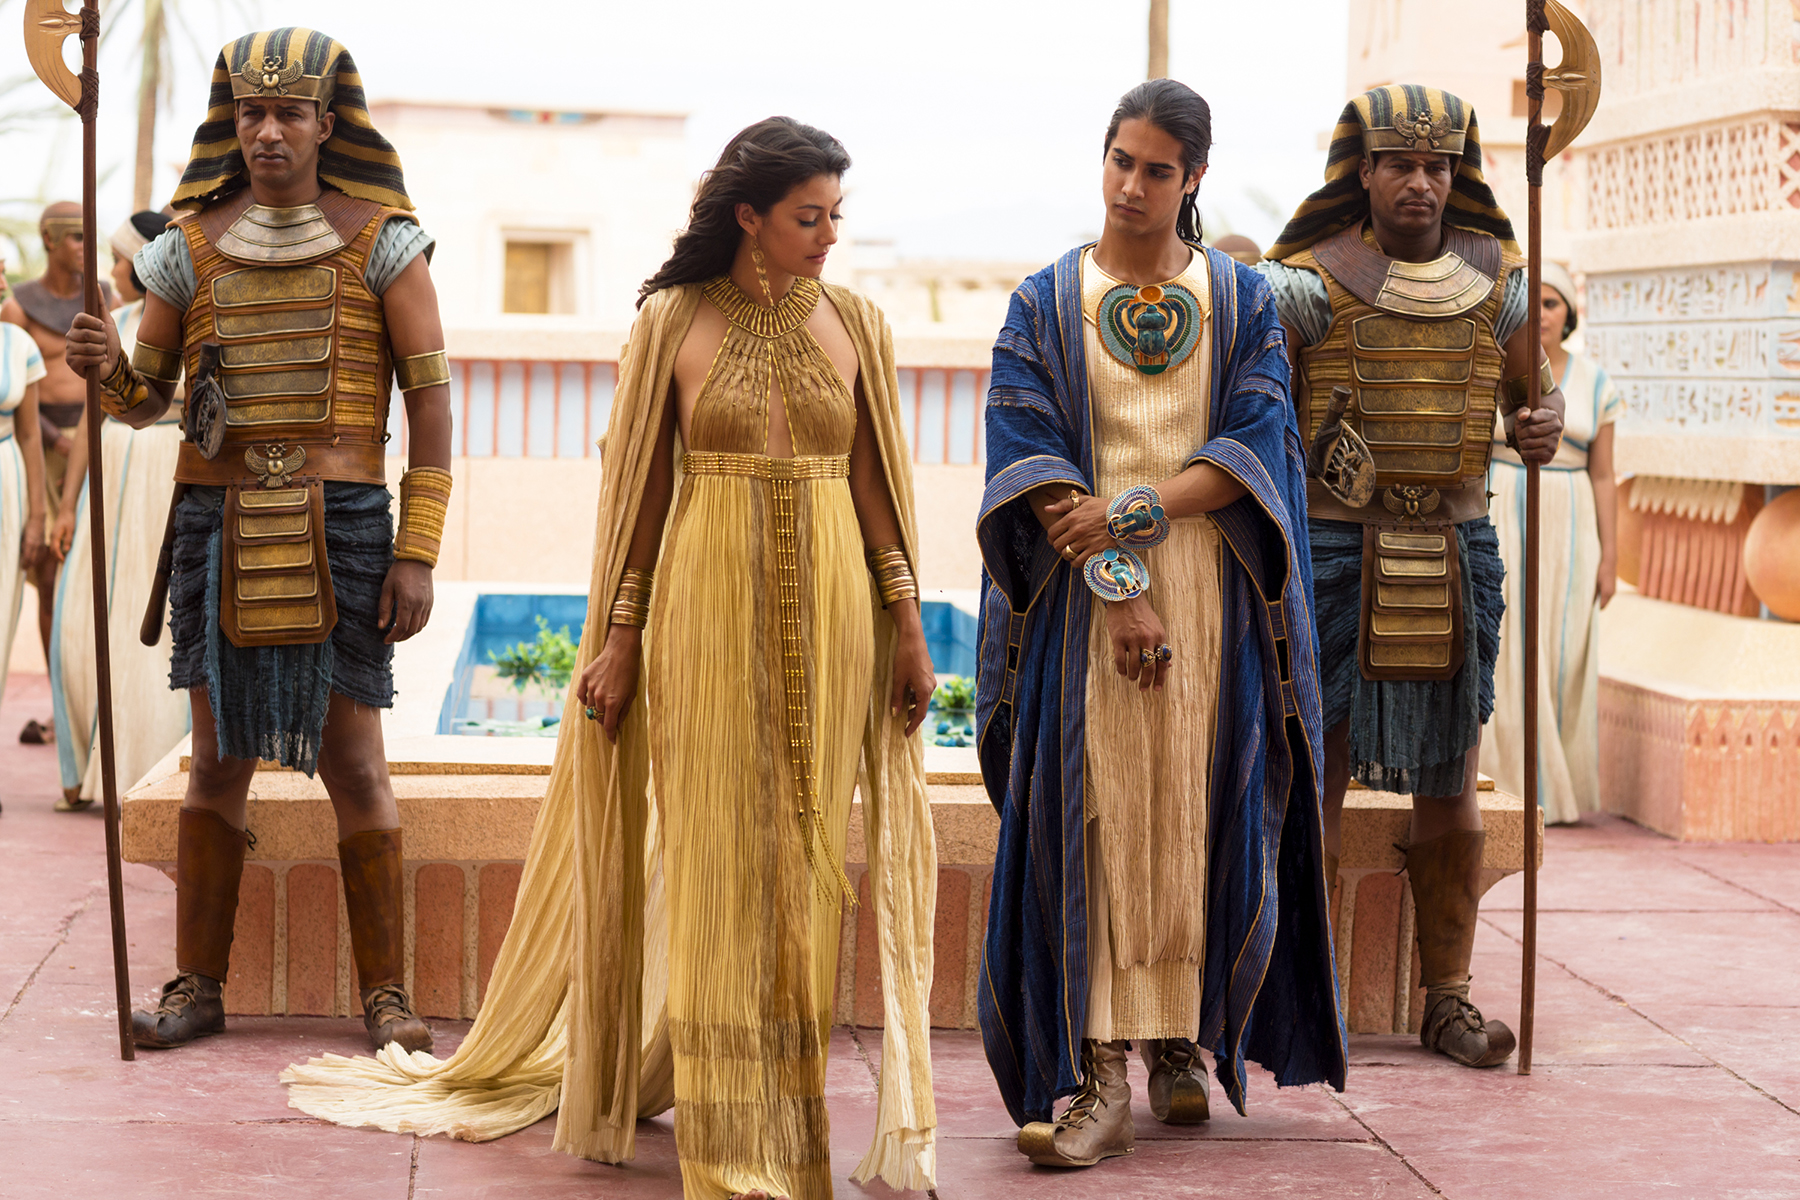 smaller Queen Anhe King Tut discuss royal mattersFrom left to right Sibylla Dean Avan Jogia